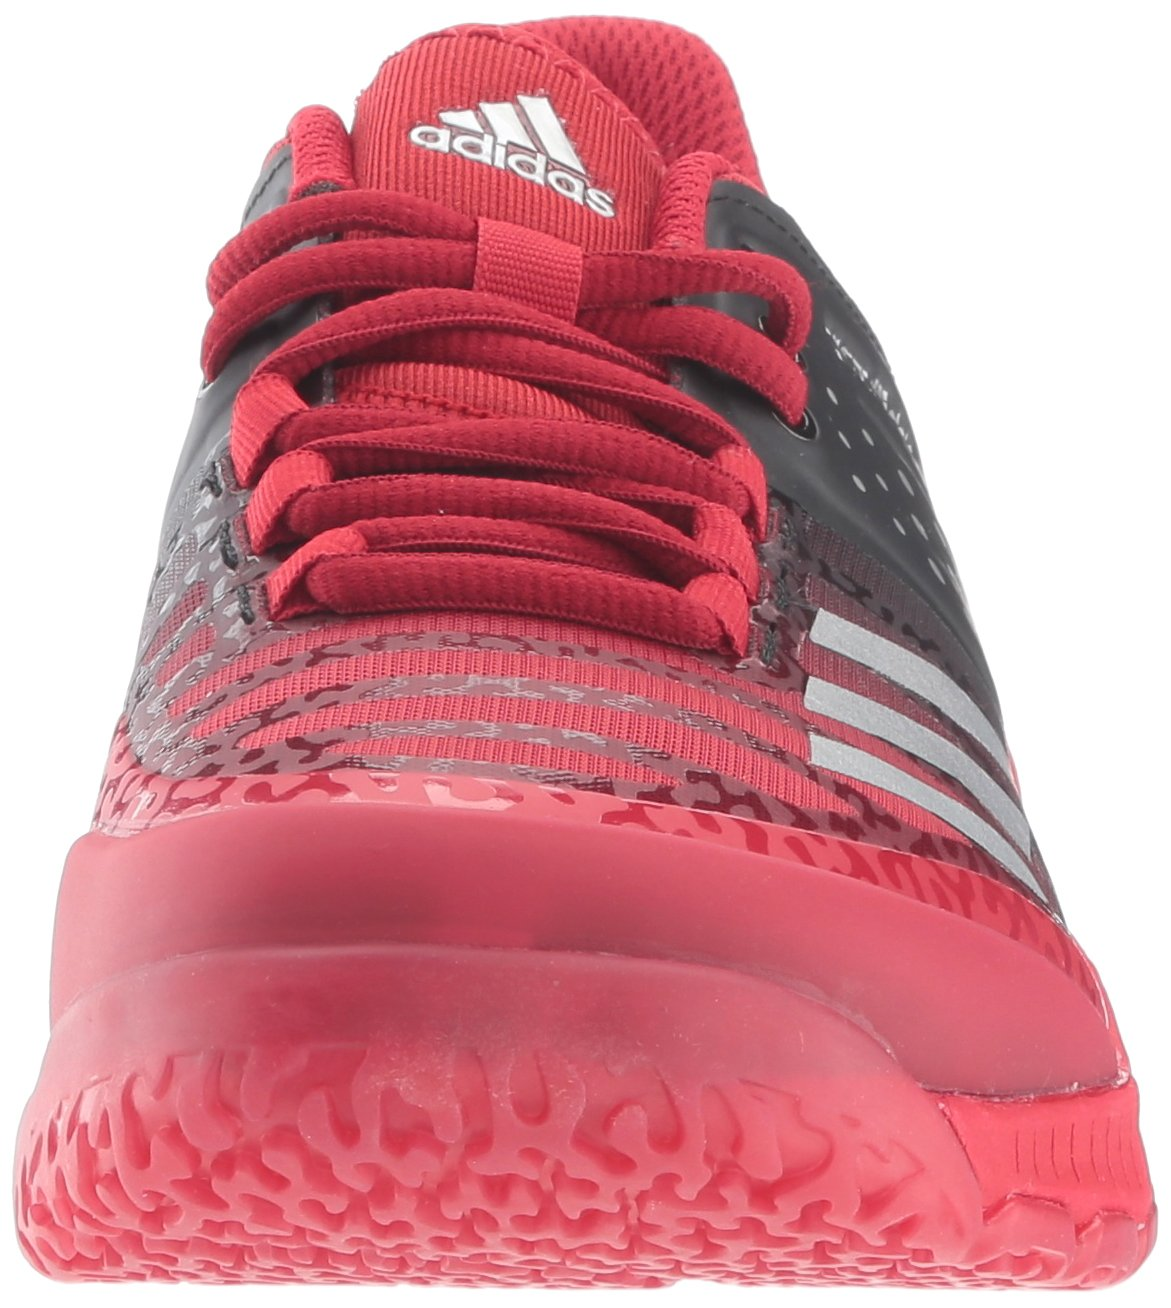 Adidas Women's Shoes Crazyflight X Volleyball Shoe Black/Metallic Silver/Power Red,7.5 by adidas Originals (Image #4)